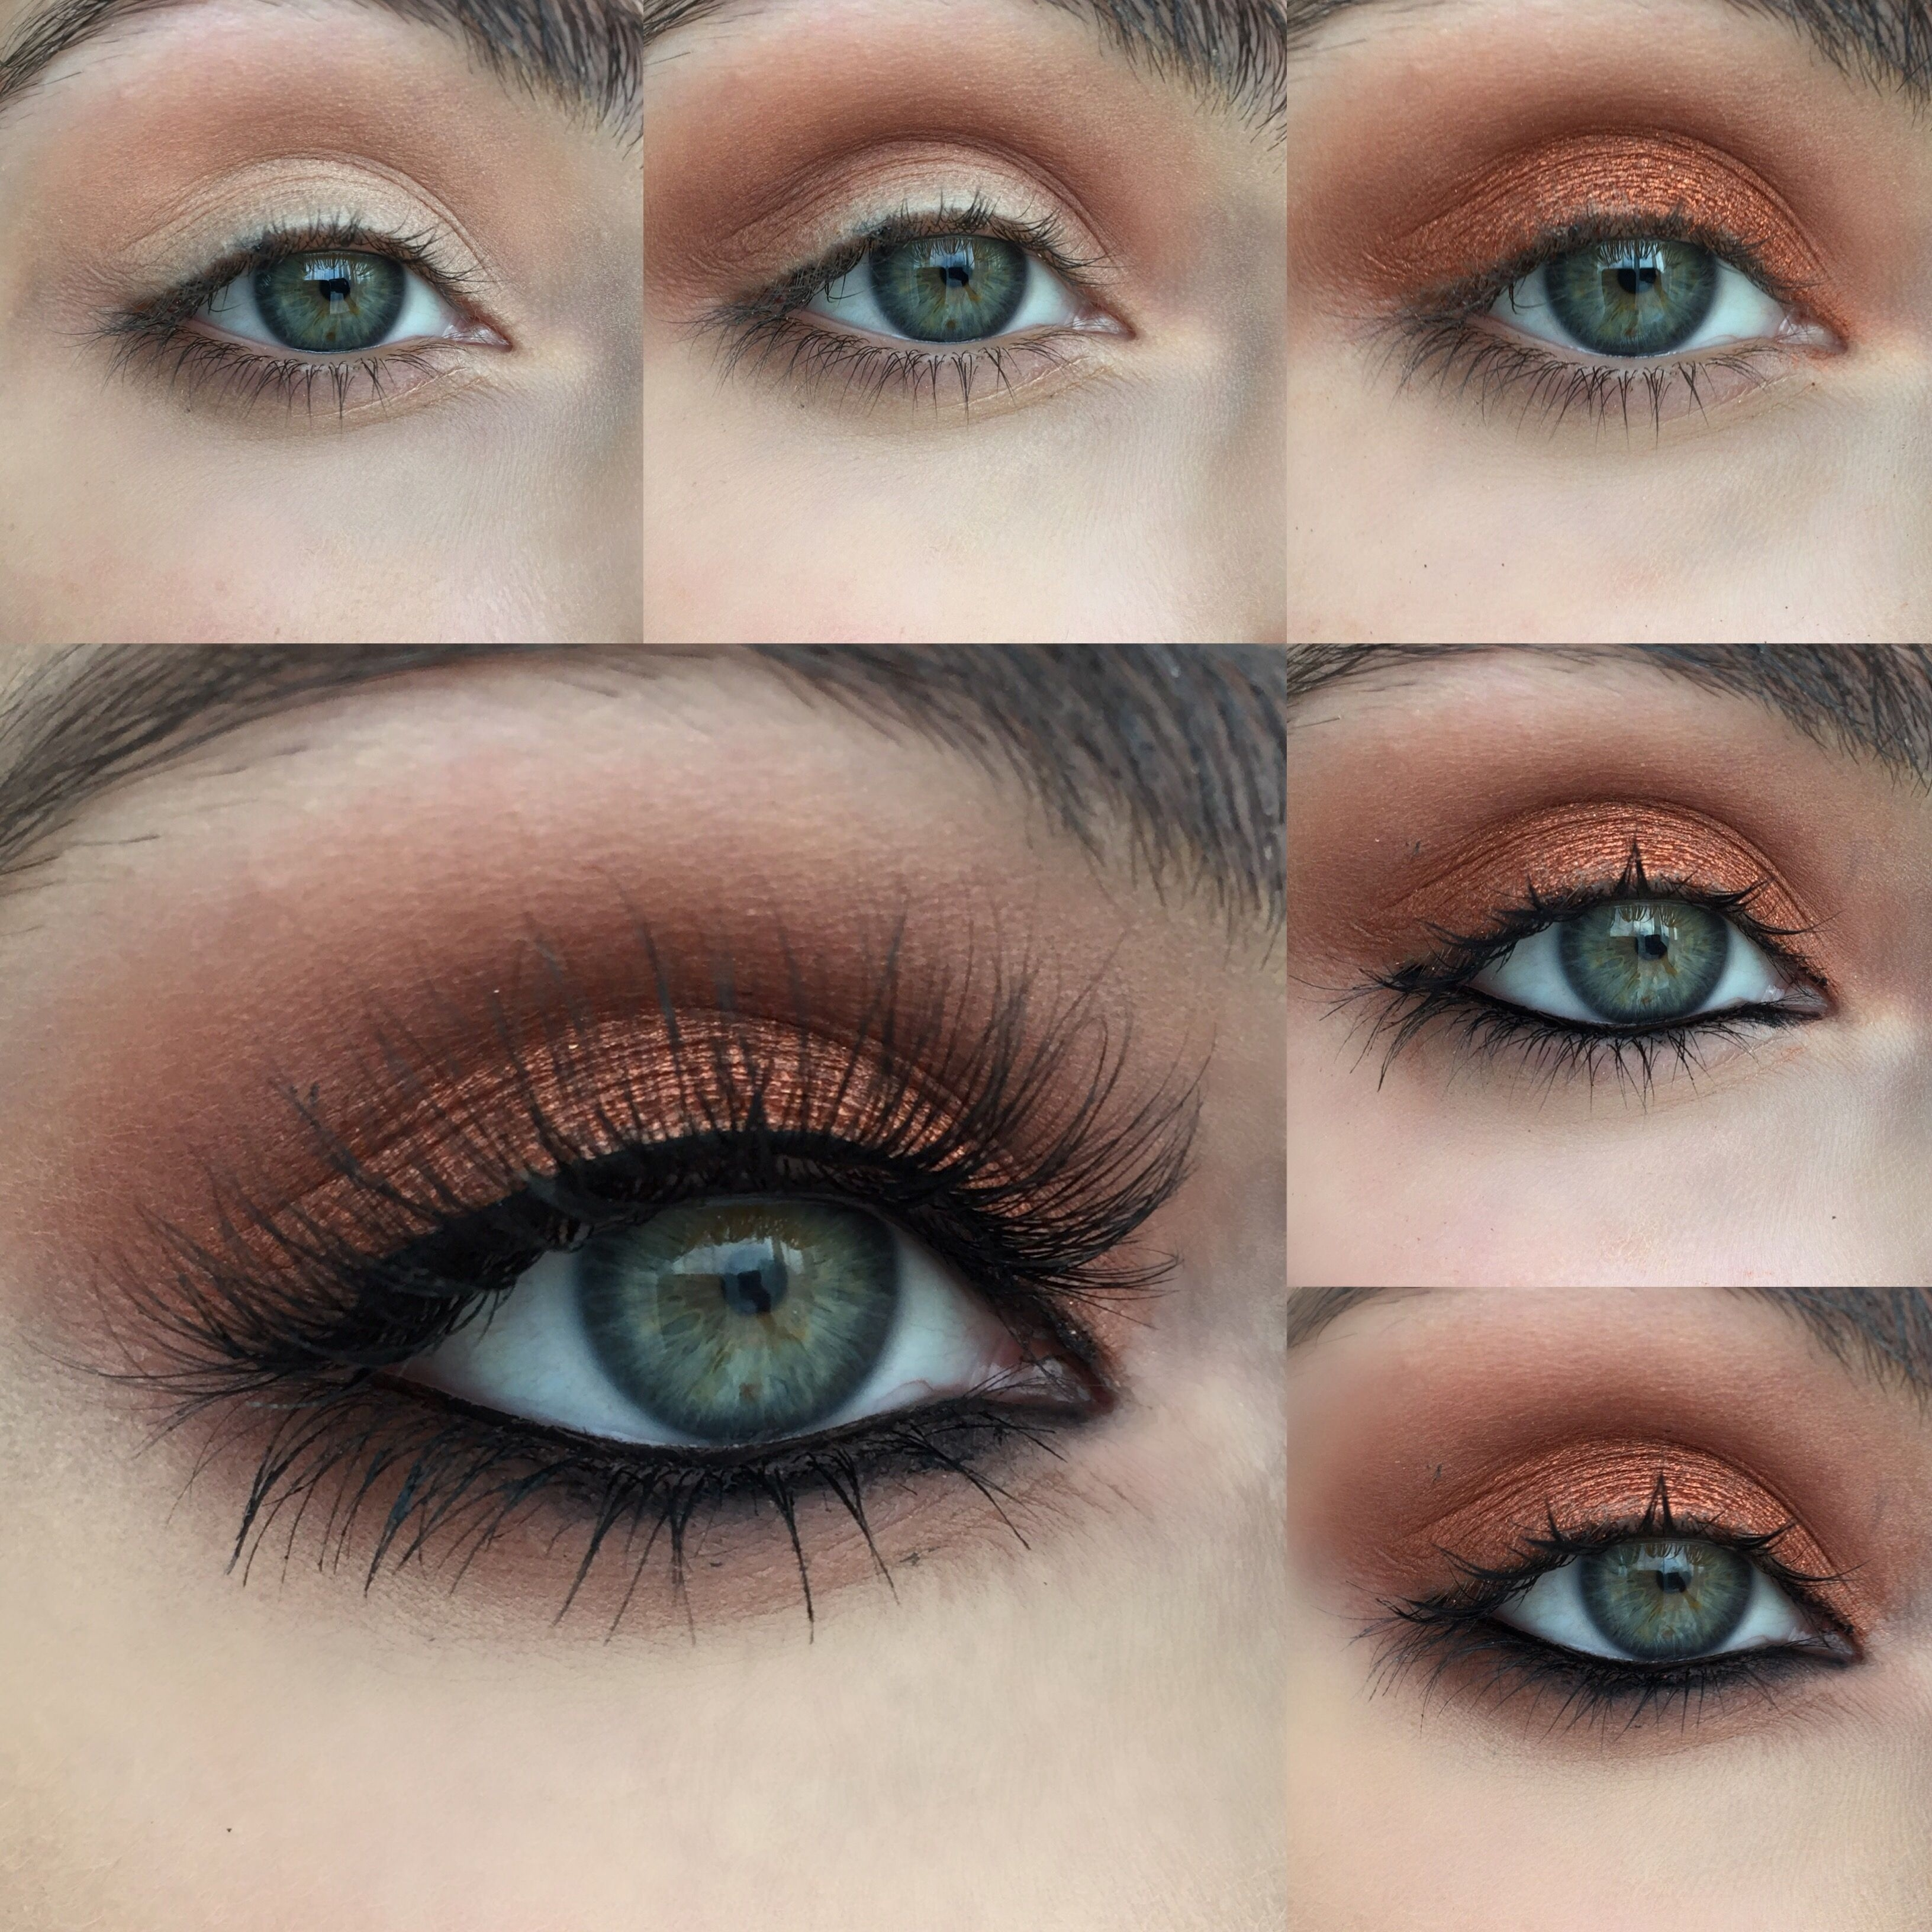 Warm Copper Photo Tutorial | Metallic & Glittery Makeup Looks throughout Good Makeup Tips For Green Eyes